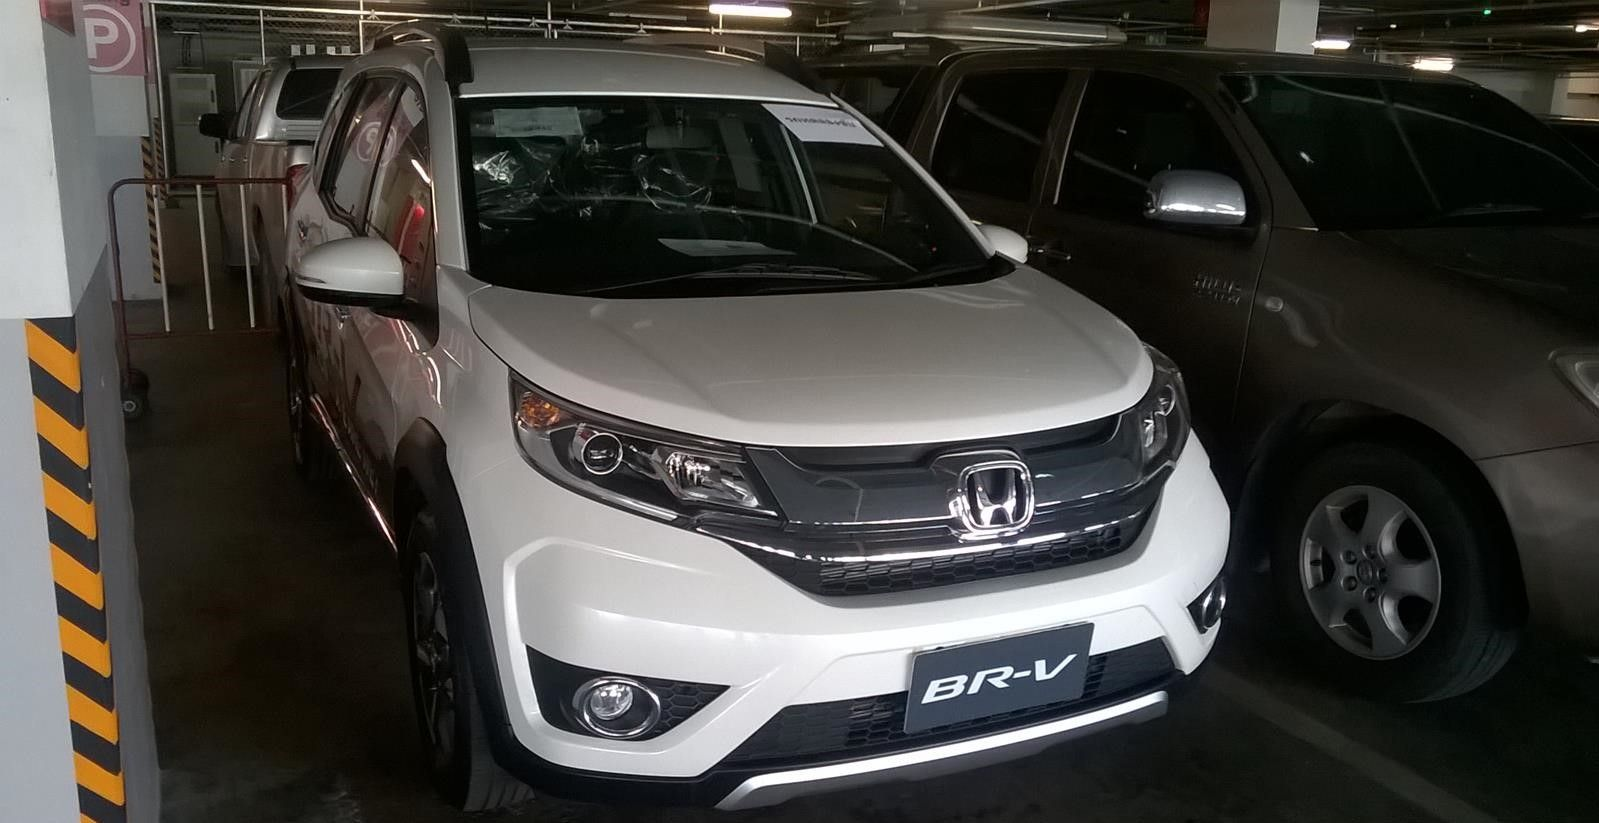 Honda BRV 2017 Prices in Pakistan Pictures and Reviews